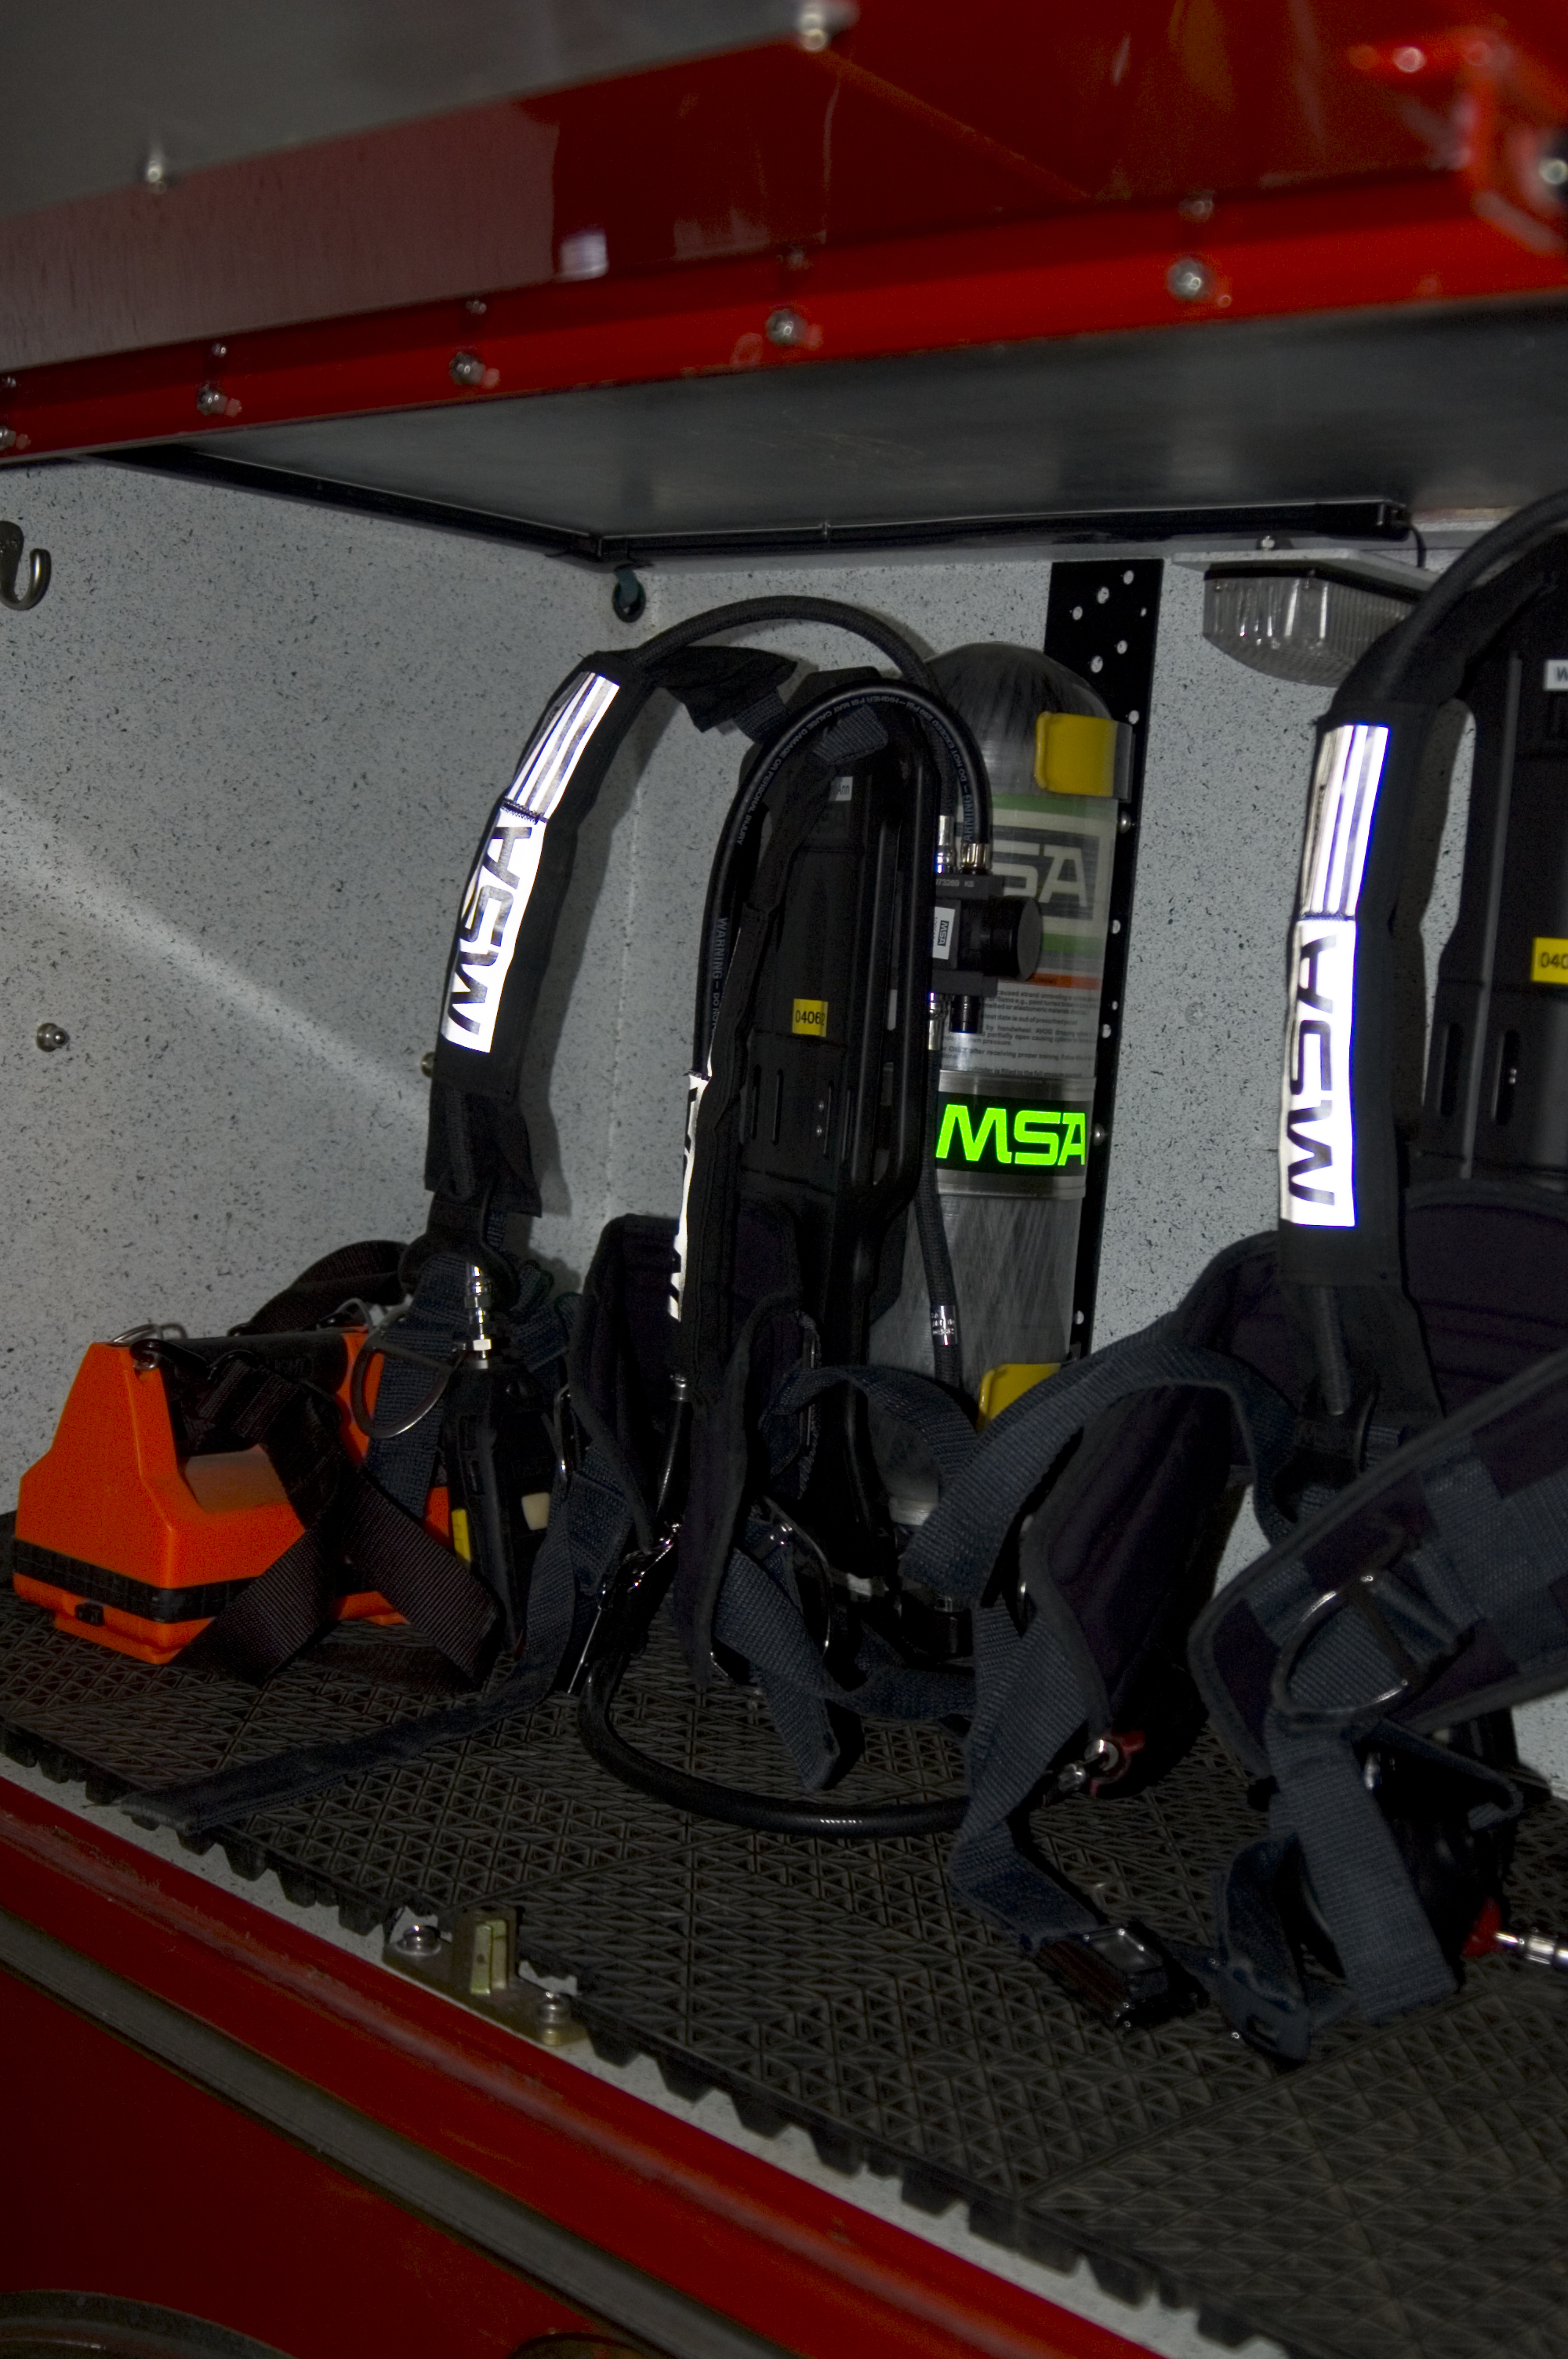 hight resolution of scba packs carried on a rack in a firetruck